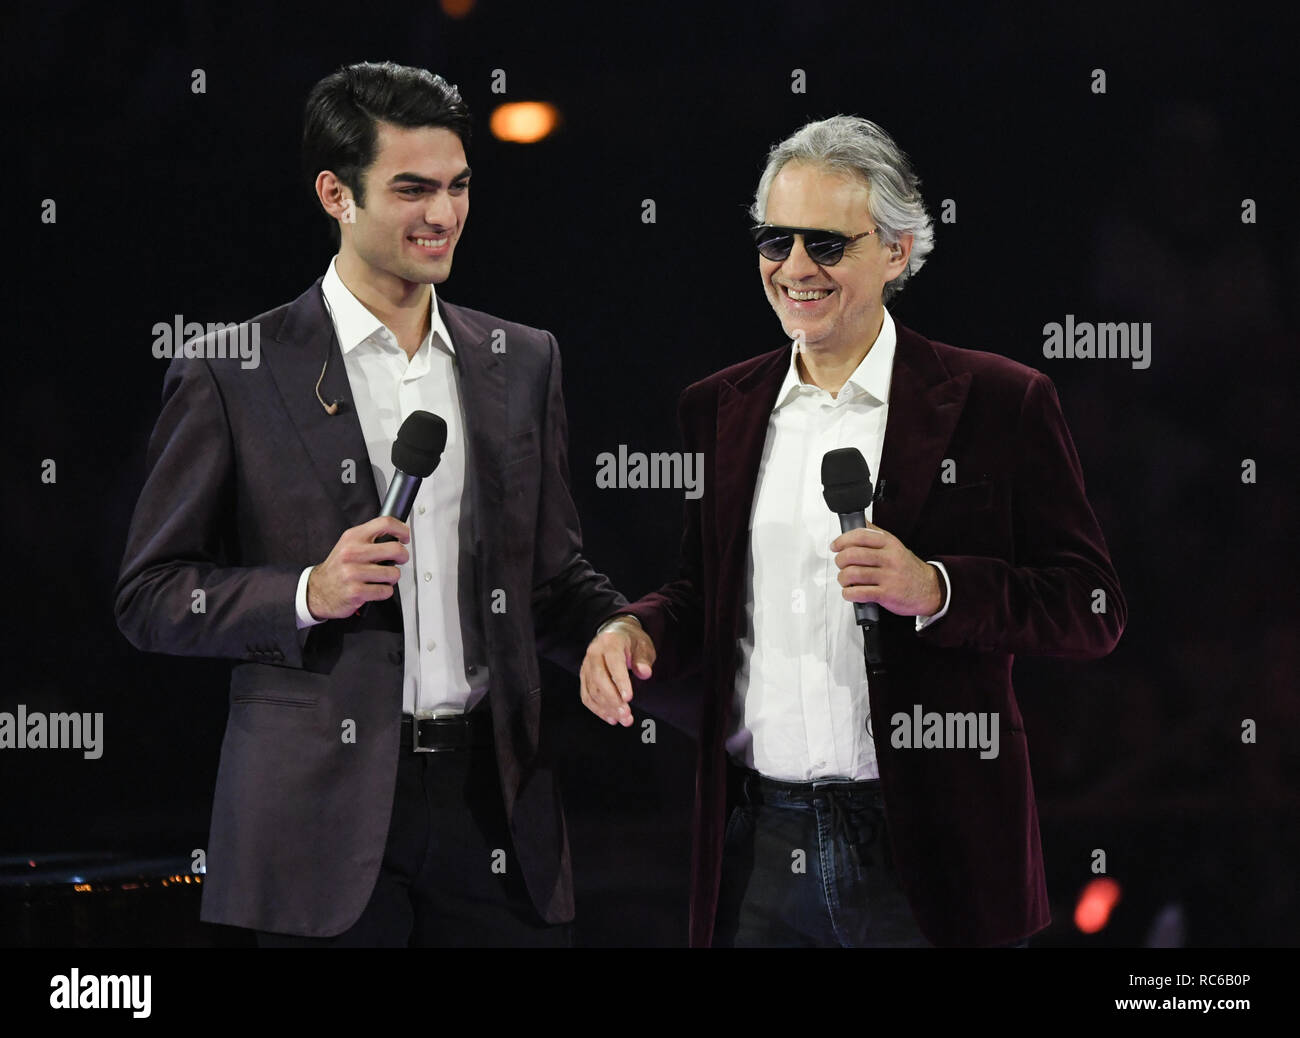 Berlin, Germany. 12th Jan, 2019. Schlagerchampions - The big party of the best, live show in the first. Andrea and Matteo Bocelli on stage. Credit: Jens Kalaene/dpa-Zentralbild/ZB/dpa/Alamy Live News - Stock Image